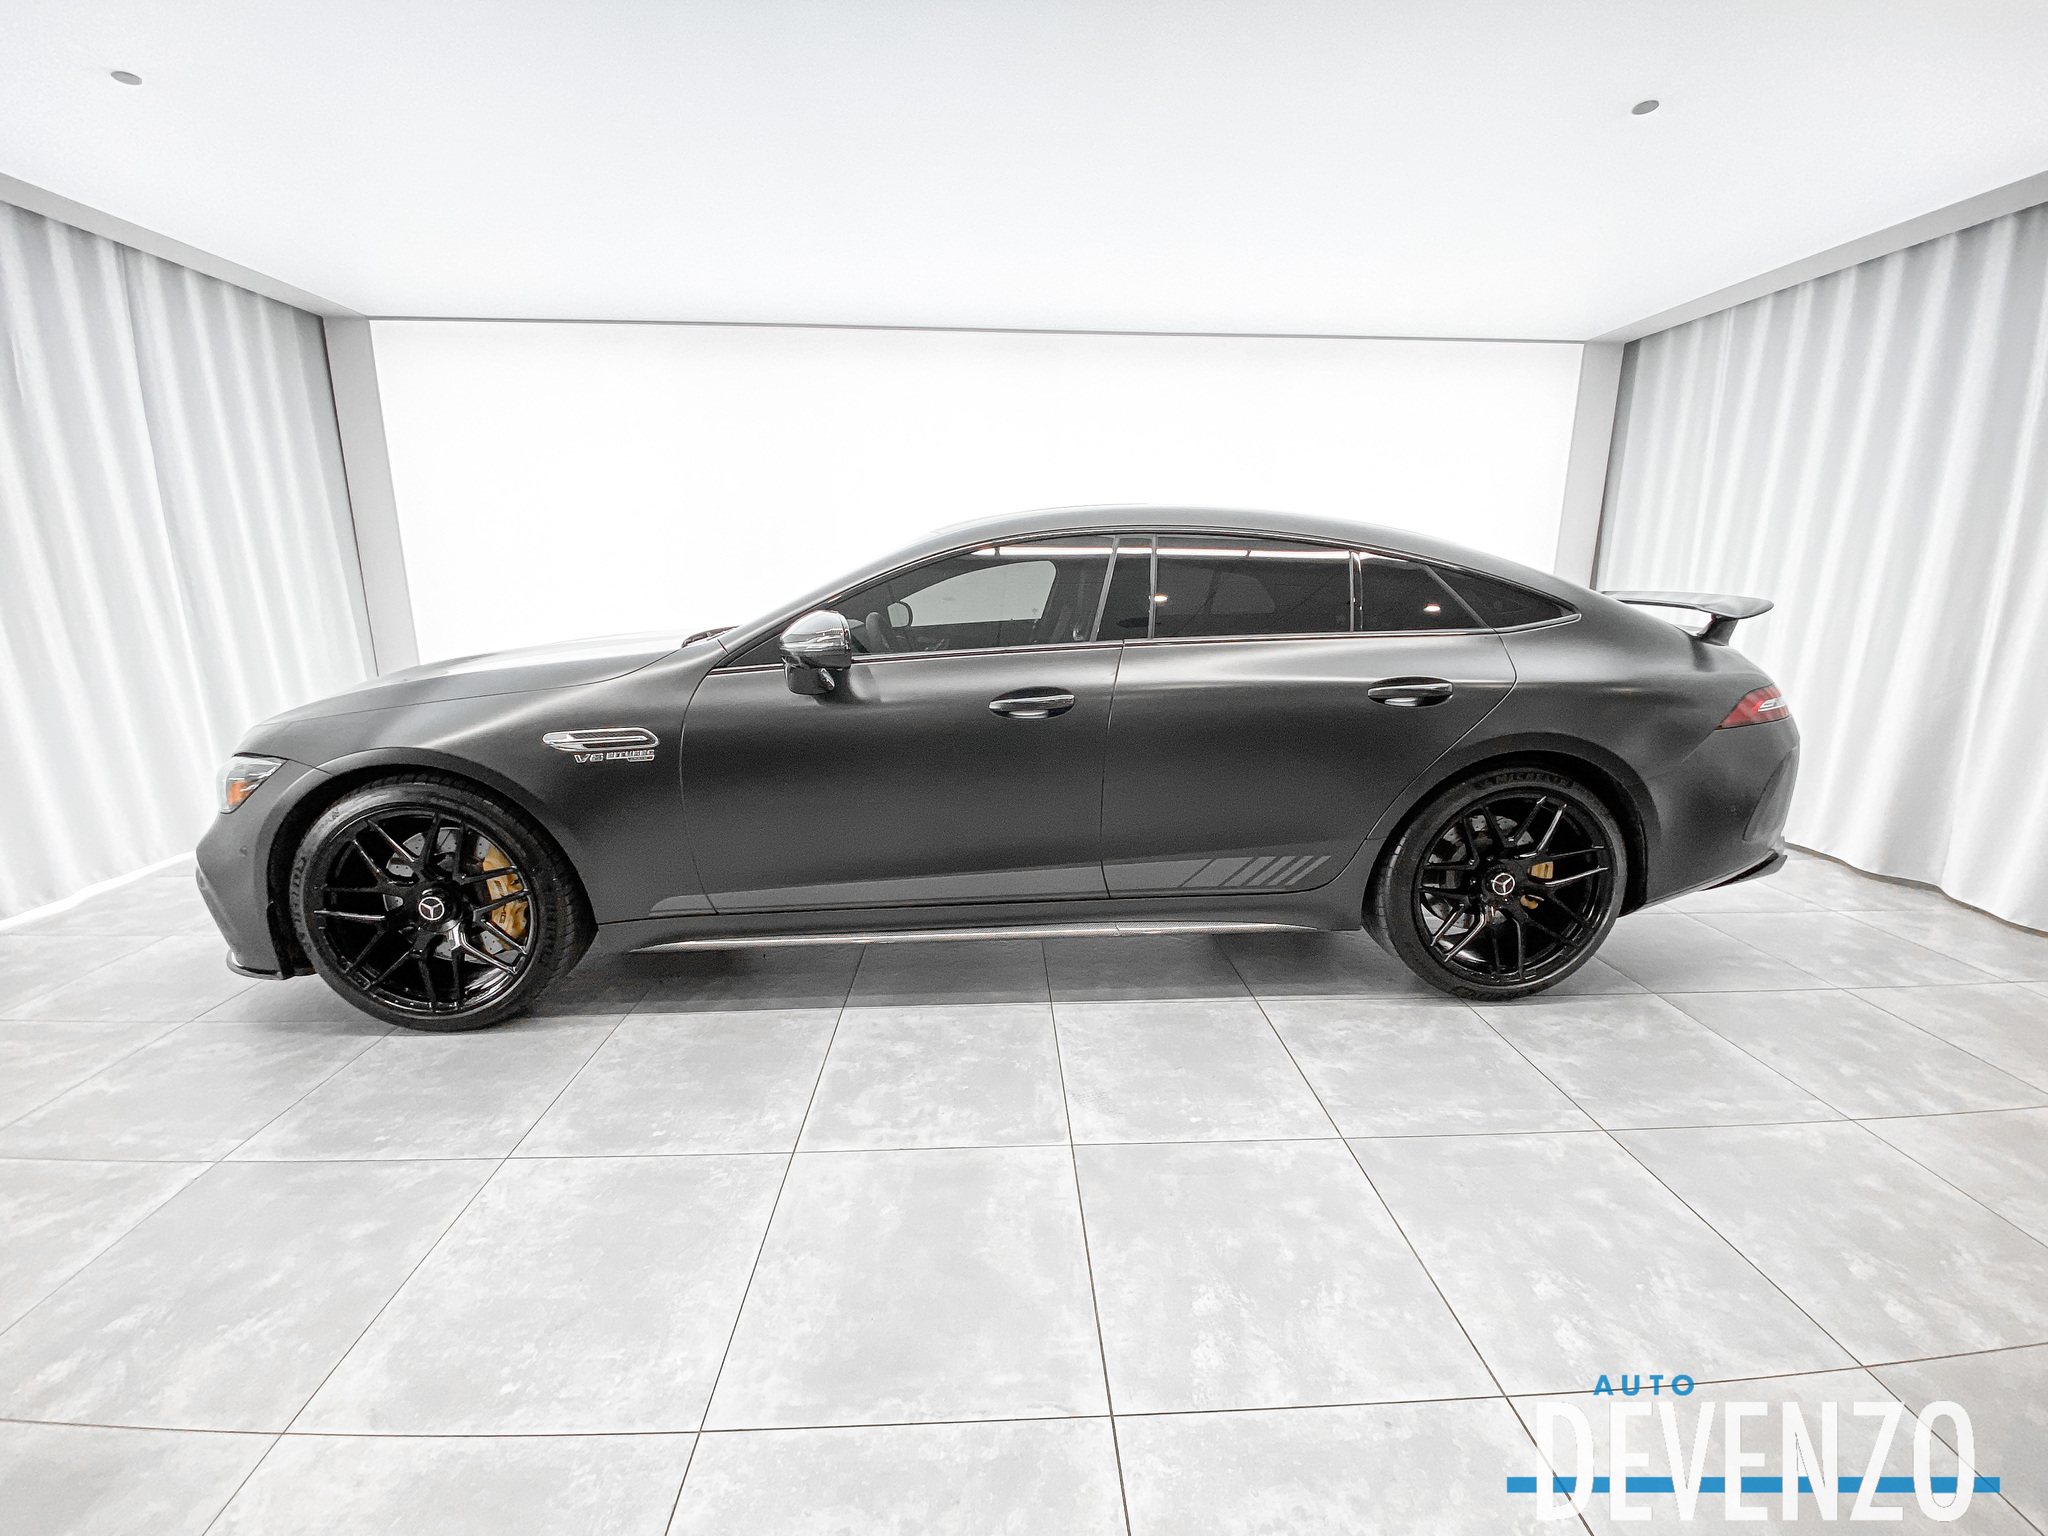 2019 Mercedes-Benz AMG GT AMG GT63 S 4-Door Coupe 630HP  EDITION 1 complet